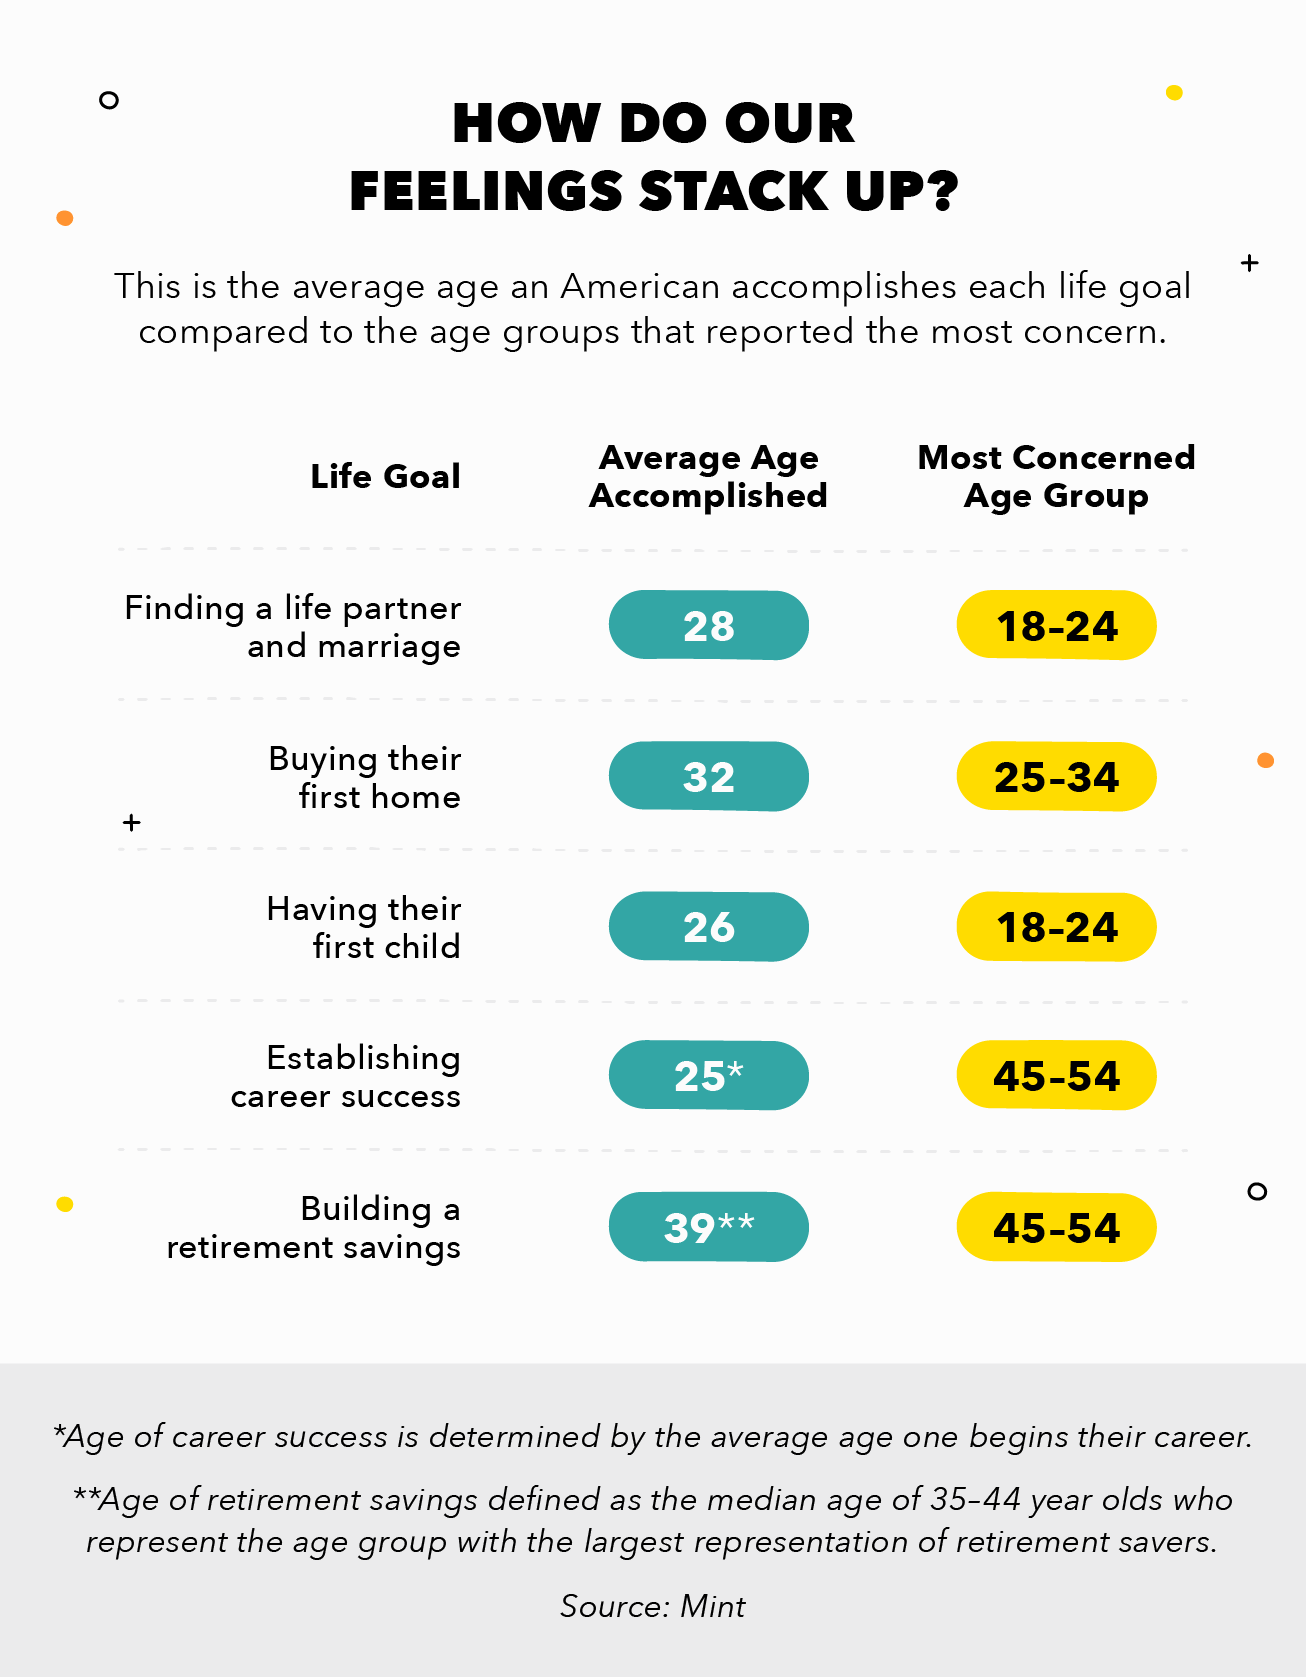 Comparison of when American achieve these life milestones vs. the most concerned ages